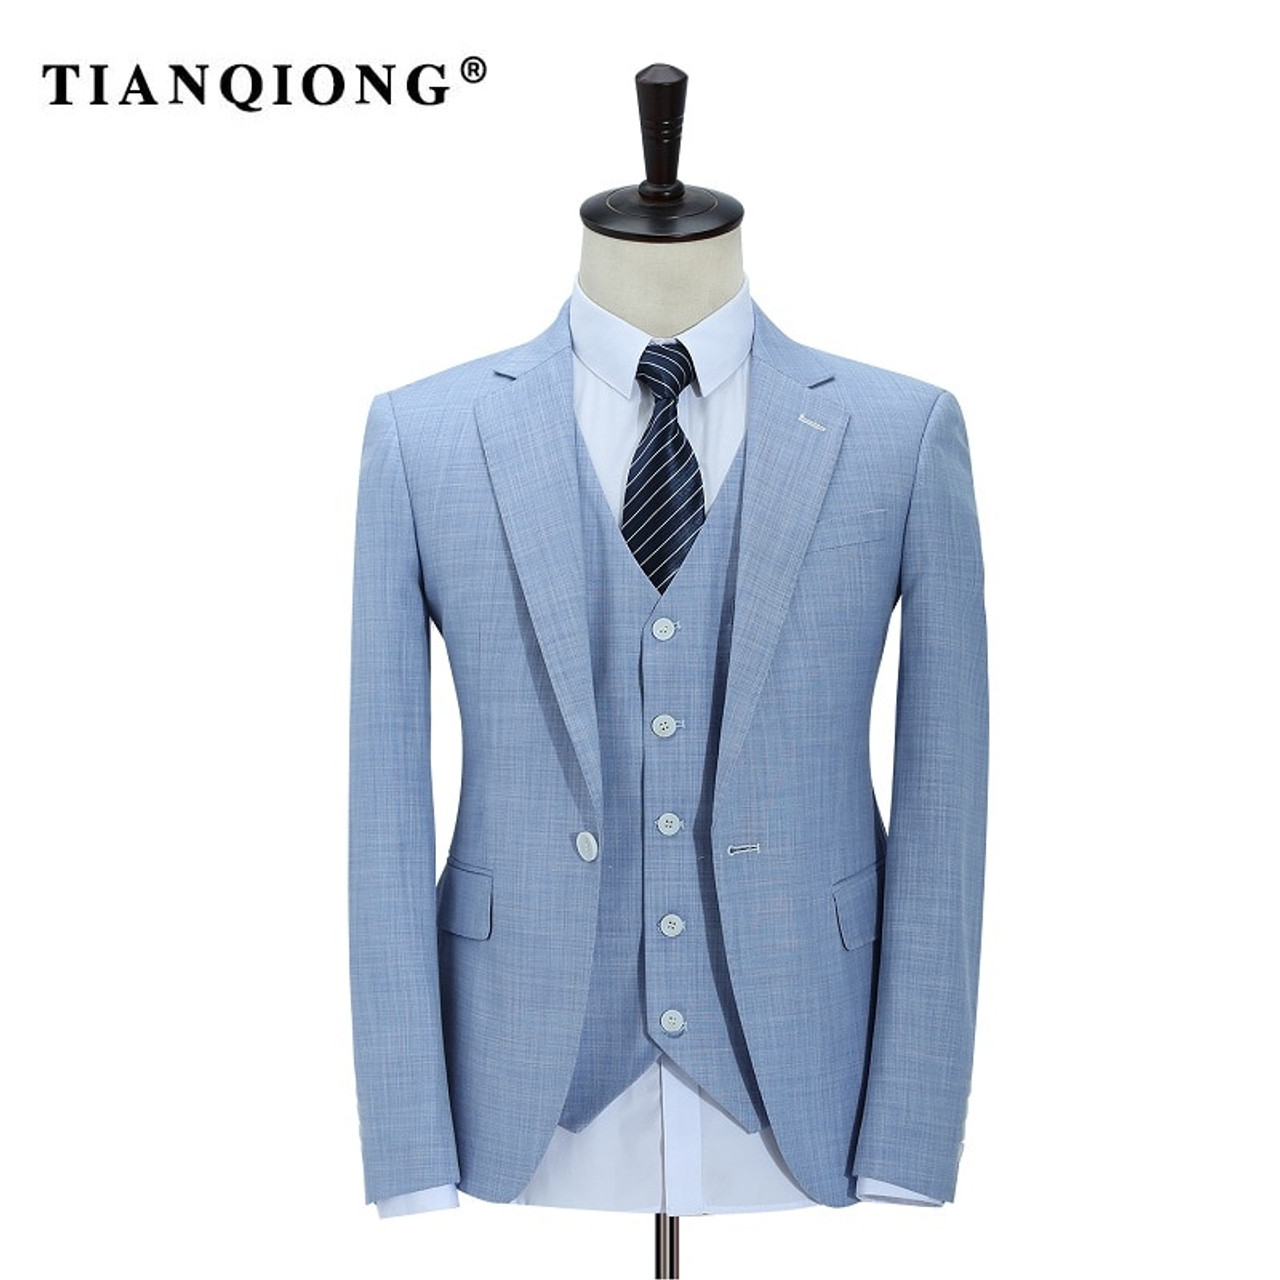 9790d488e82 ... TIAN QIONG 100% Polyester Sky Blue Suit Men Slim Fit Leisure Business  Wedding Dress Suits ...